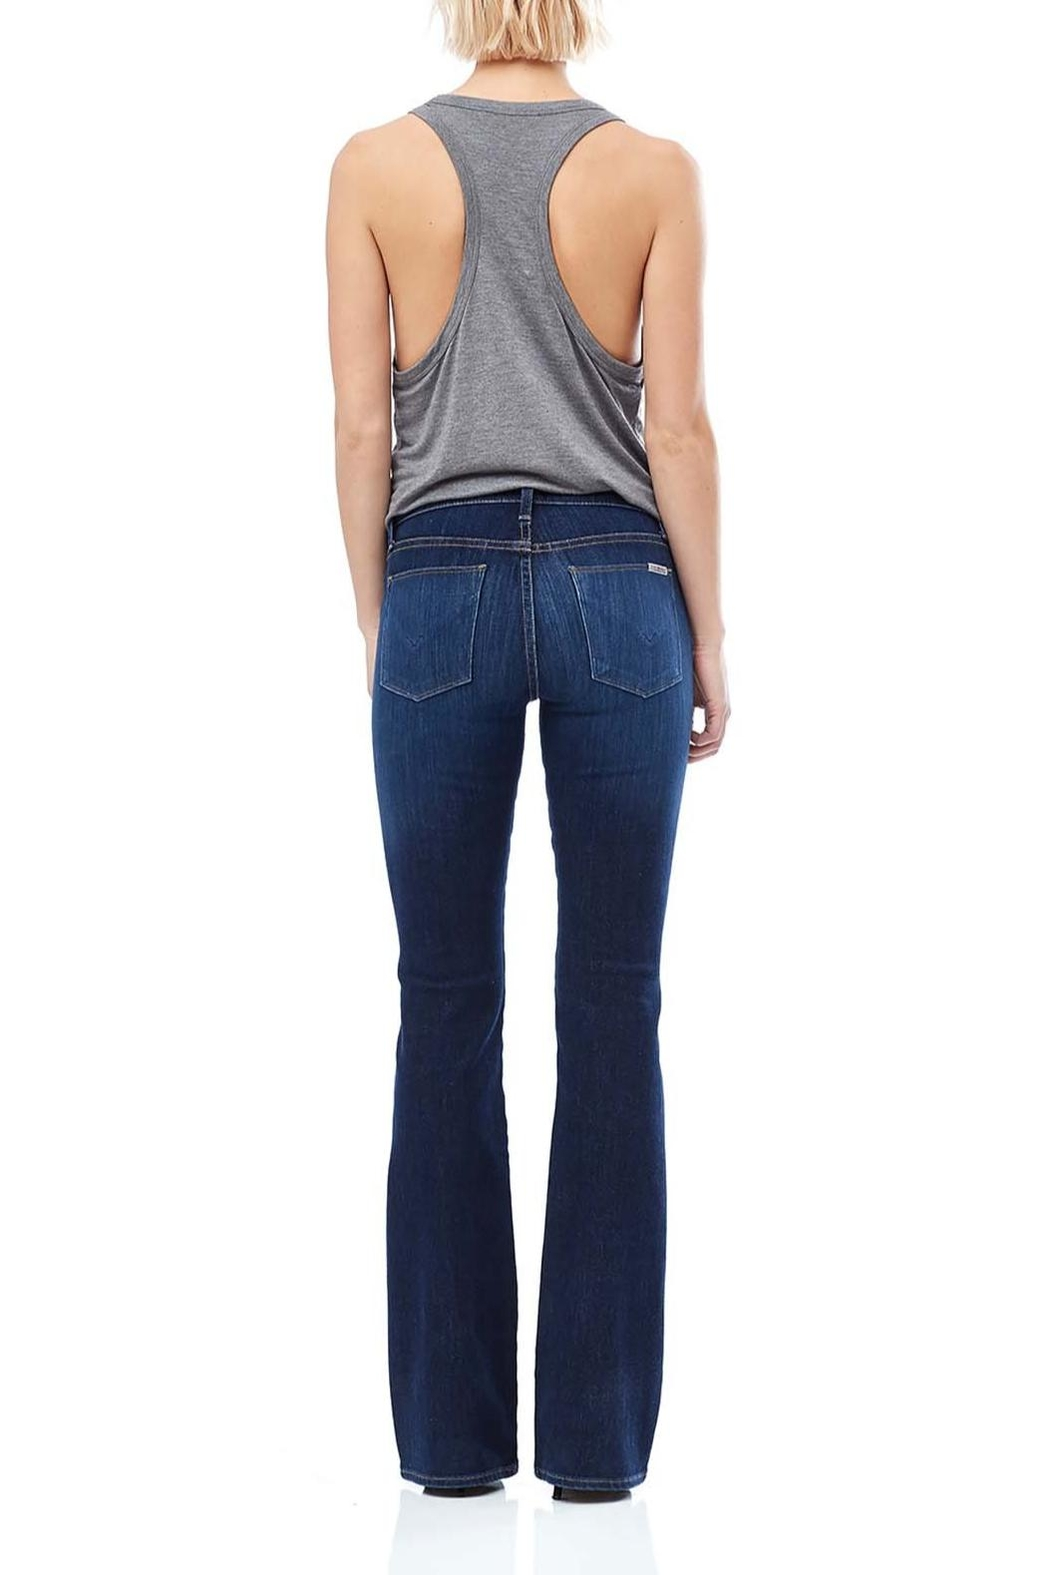 Hudson Jeans Essential Bootcut Jeans - Side Cropped Image